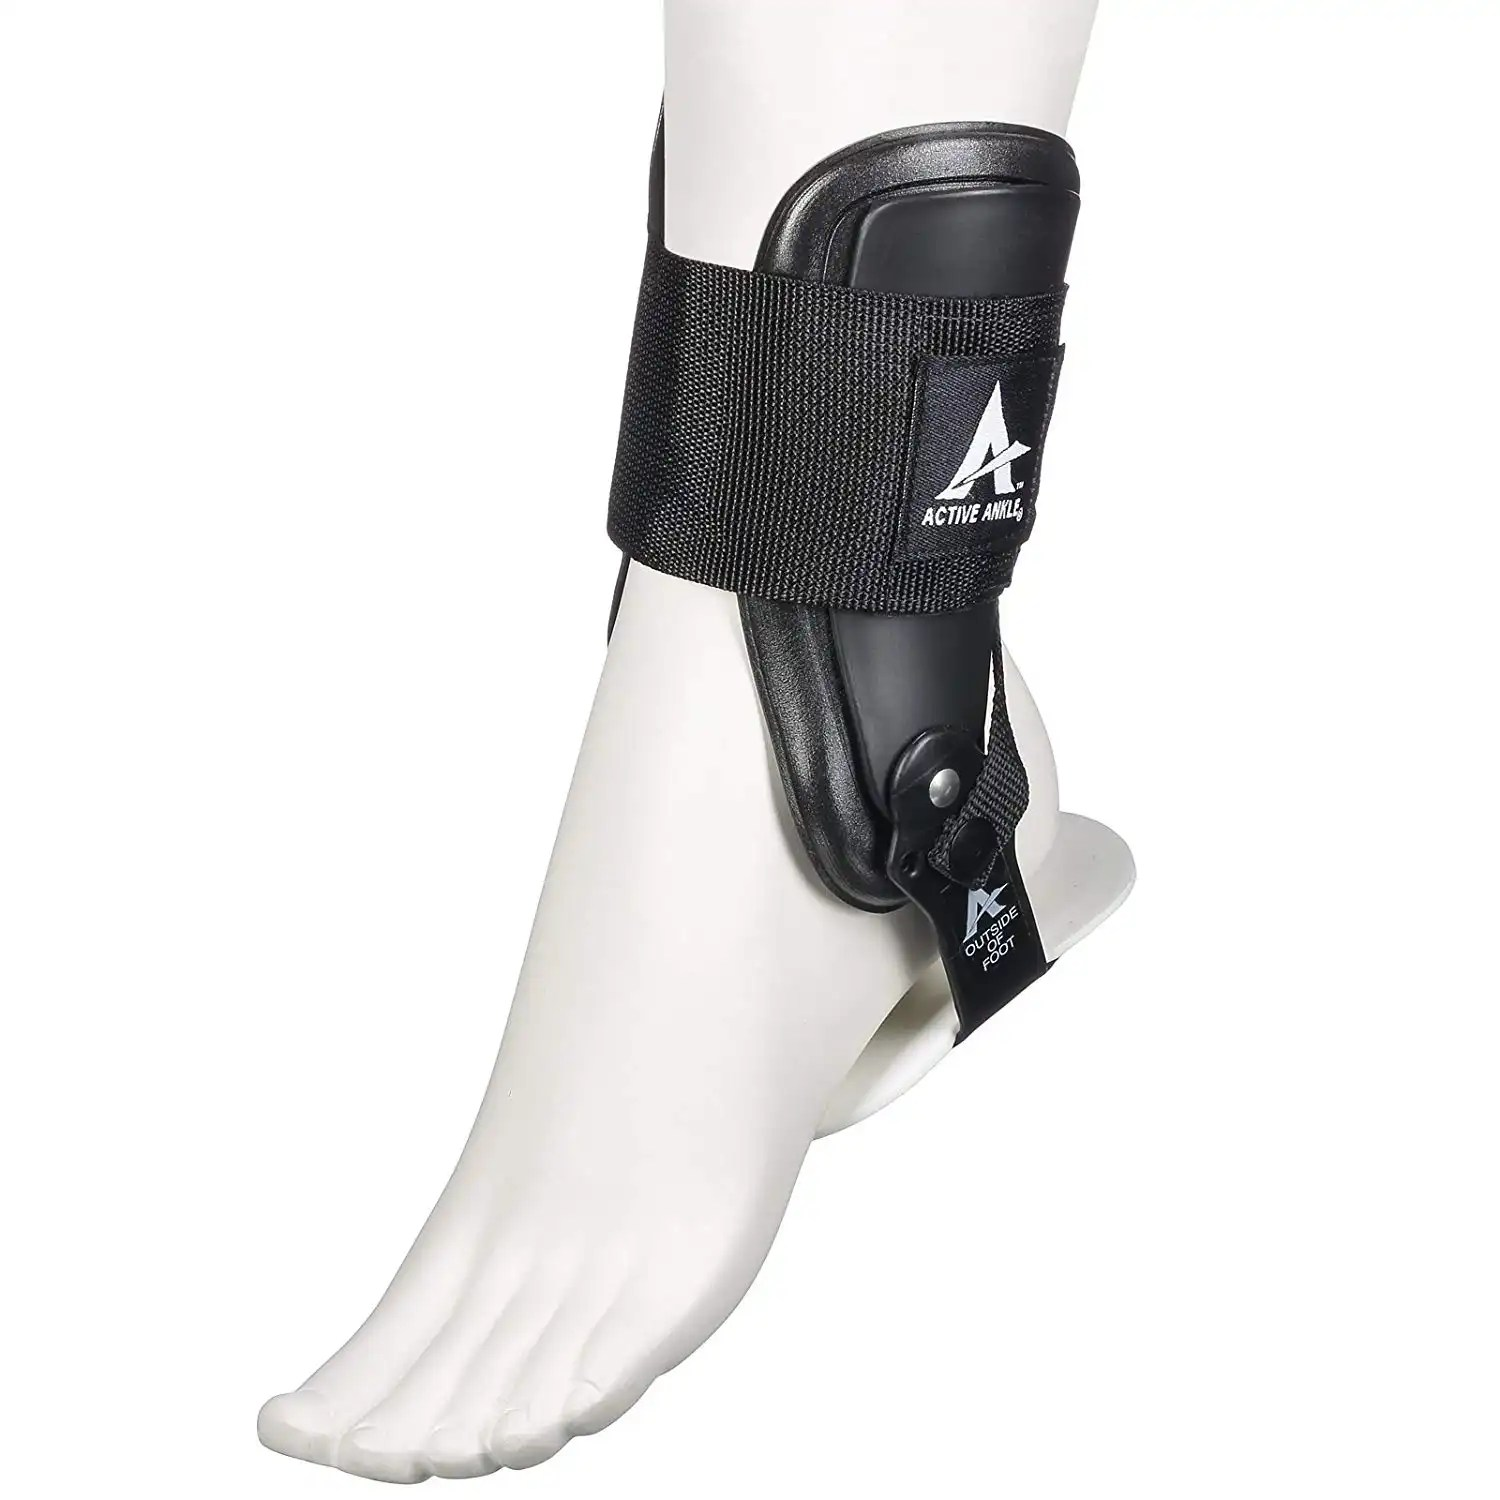 Rigid Ankle Brace